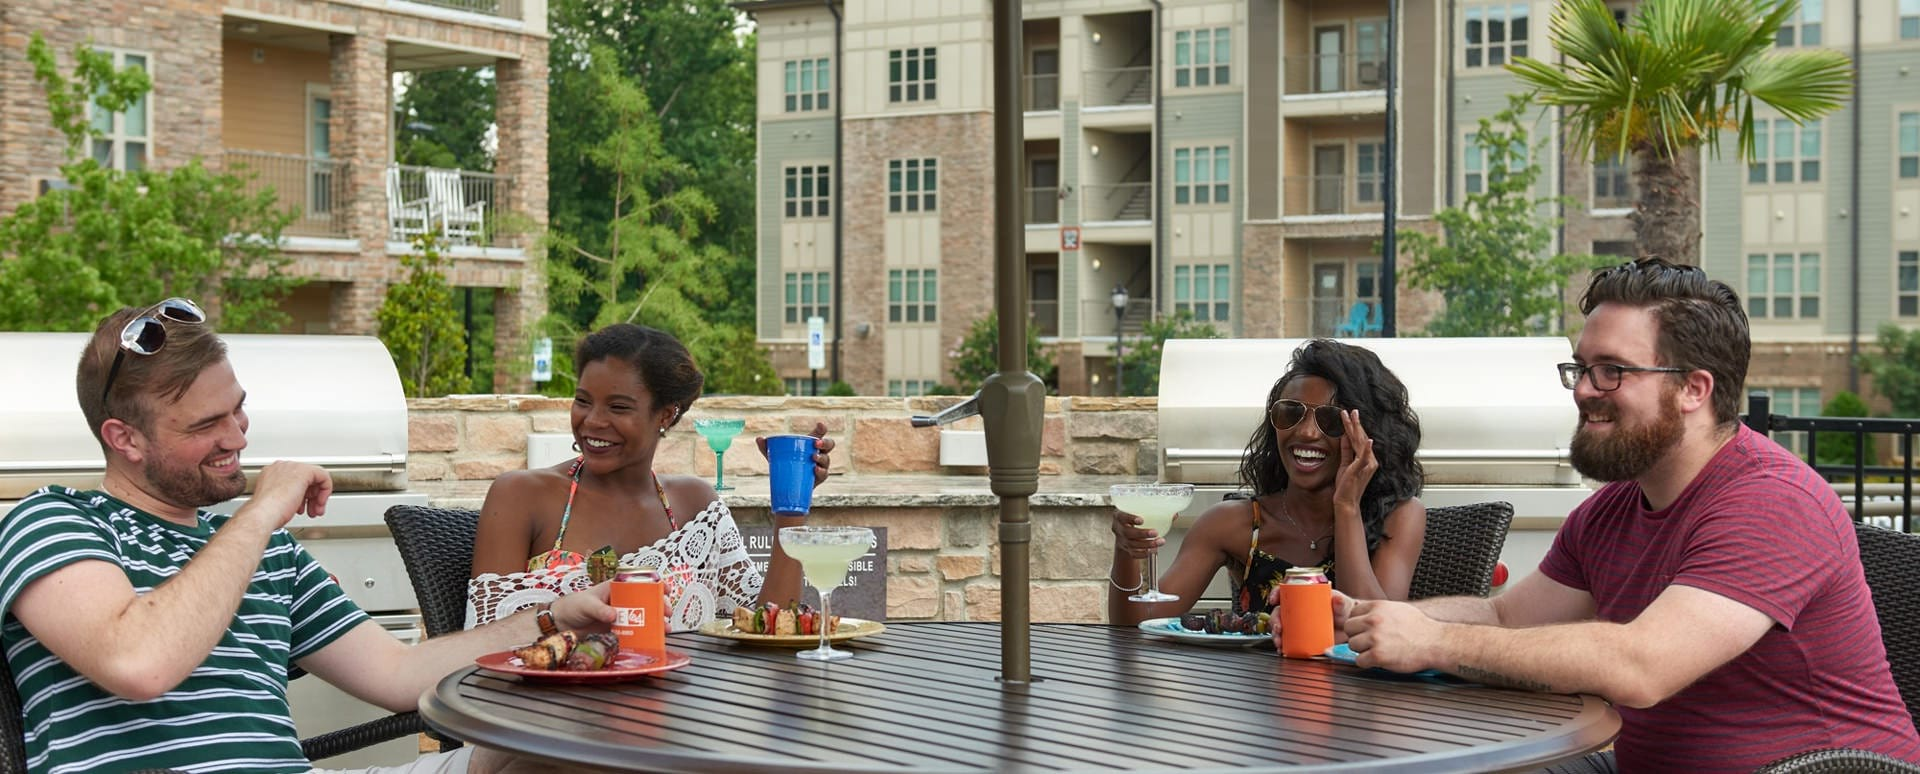 Residents enjoy outdoor grill